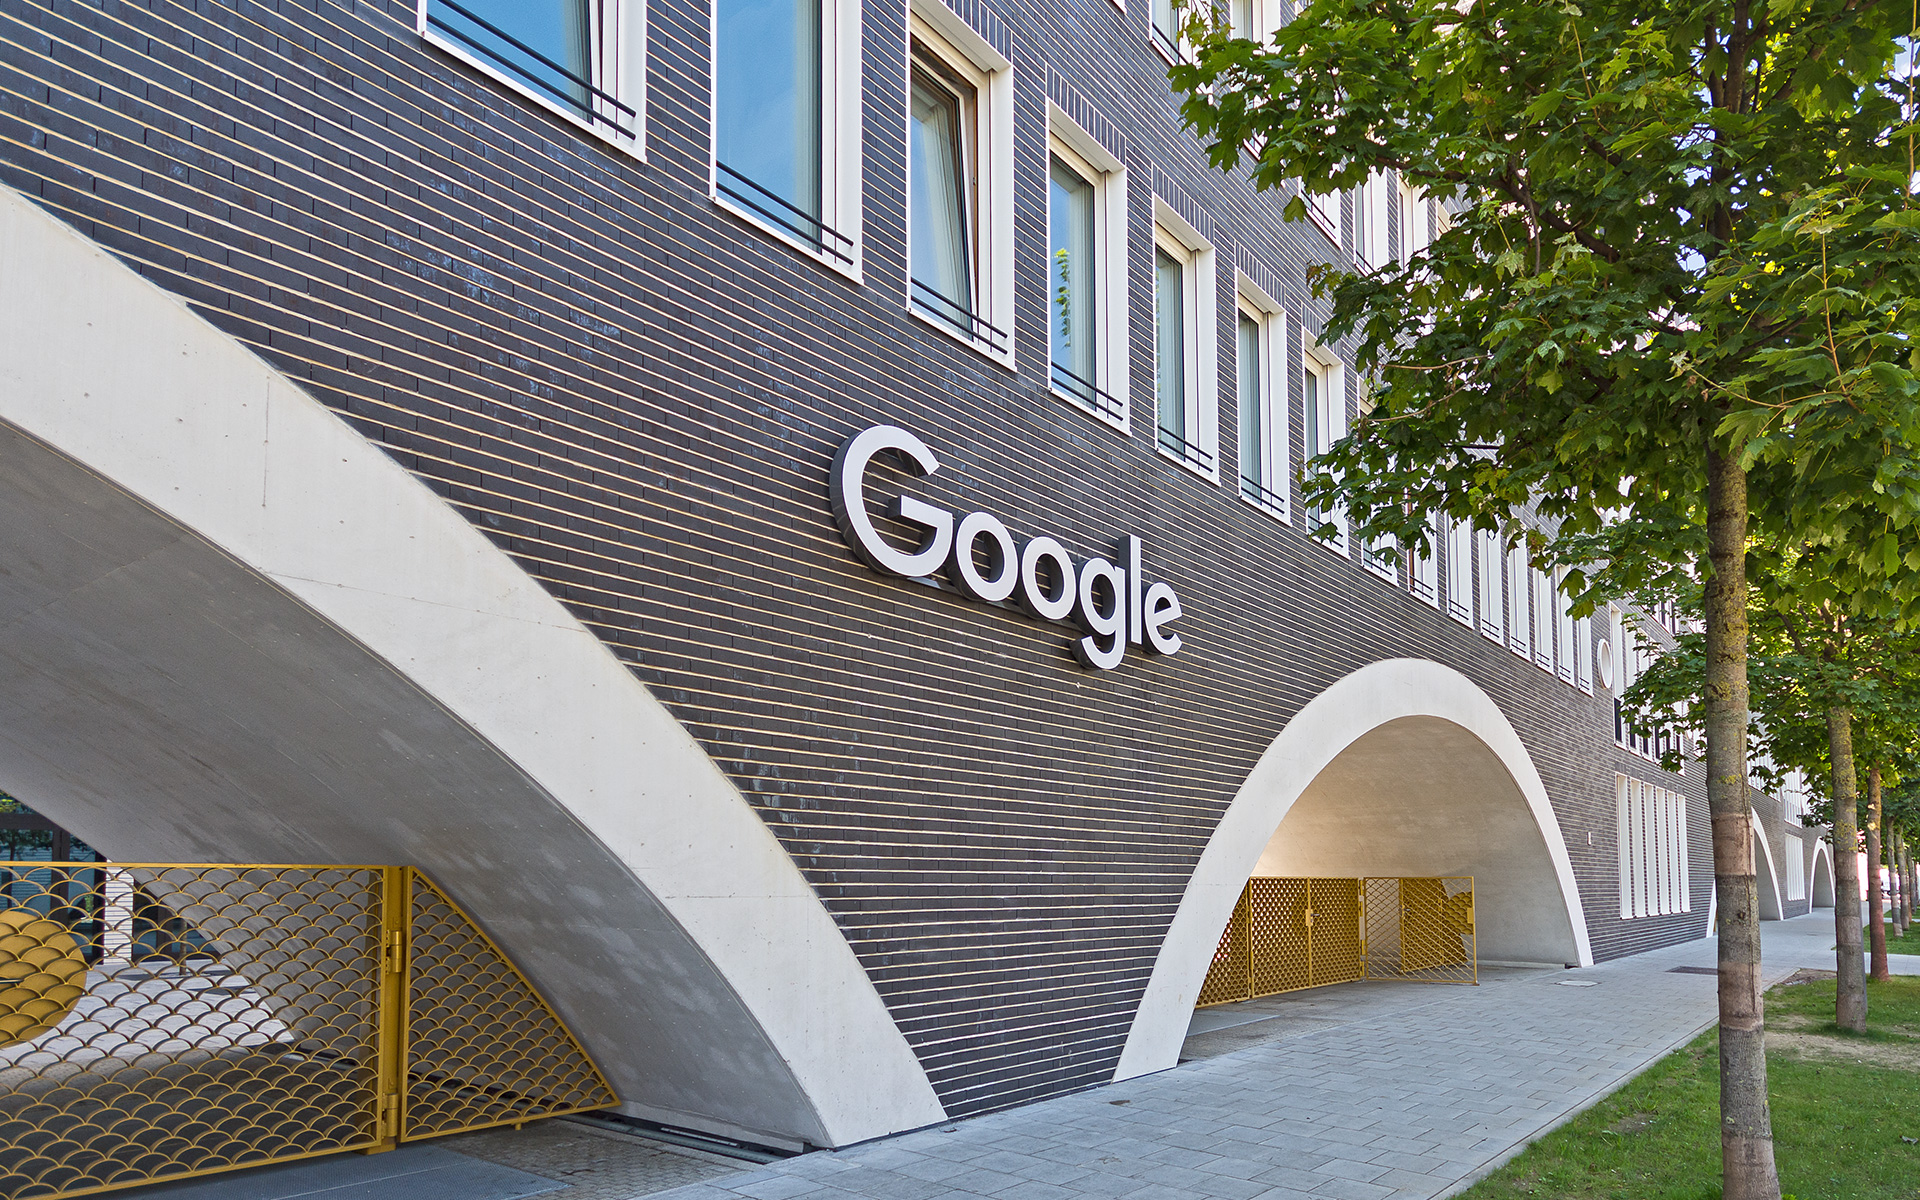 Kontorhaus Munich: a new office building housing the Google development center was built as part of the urban construction project of Arnulfpark.